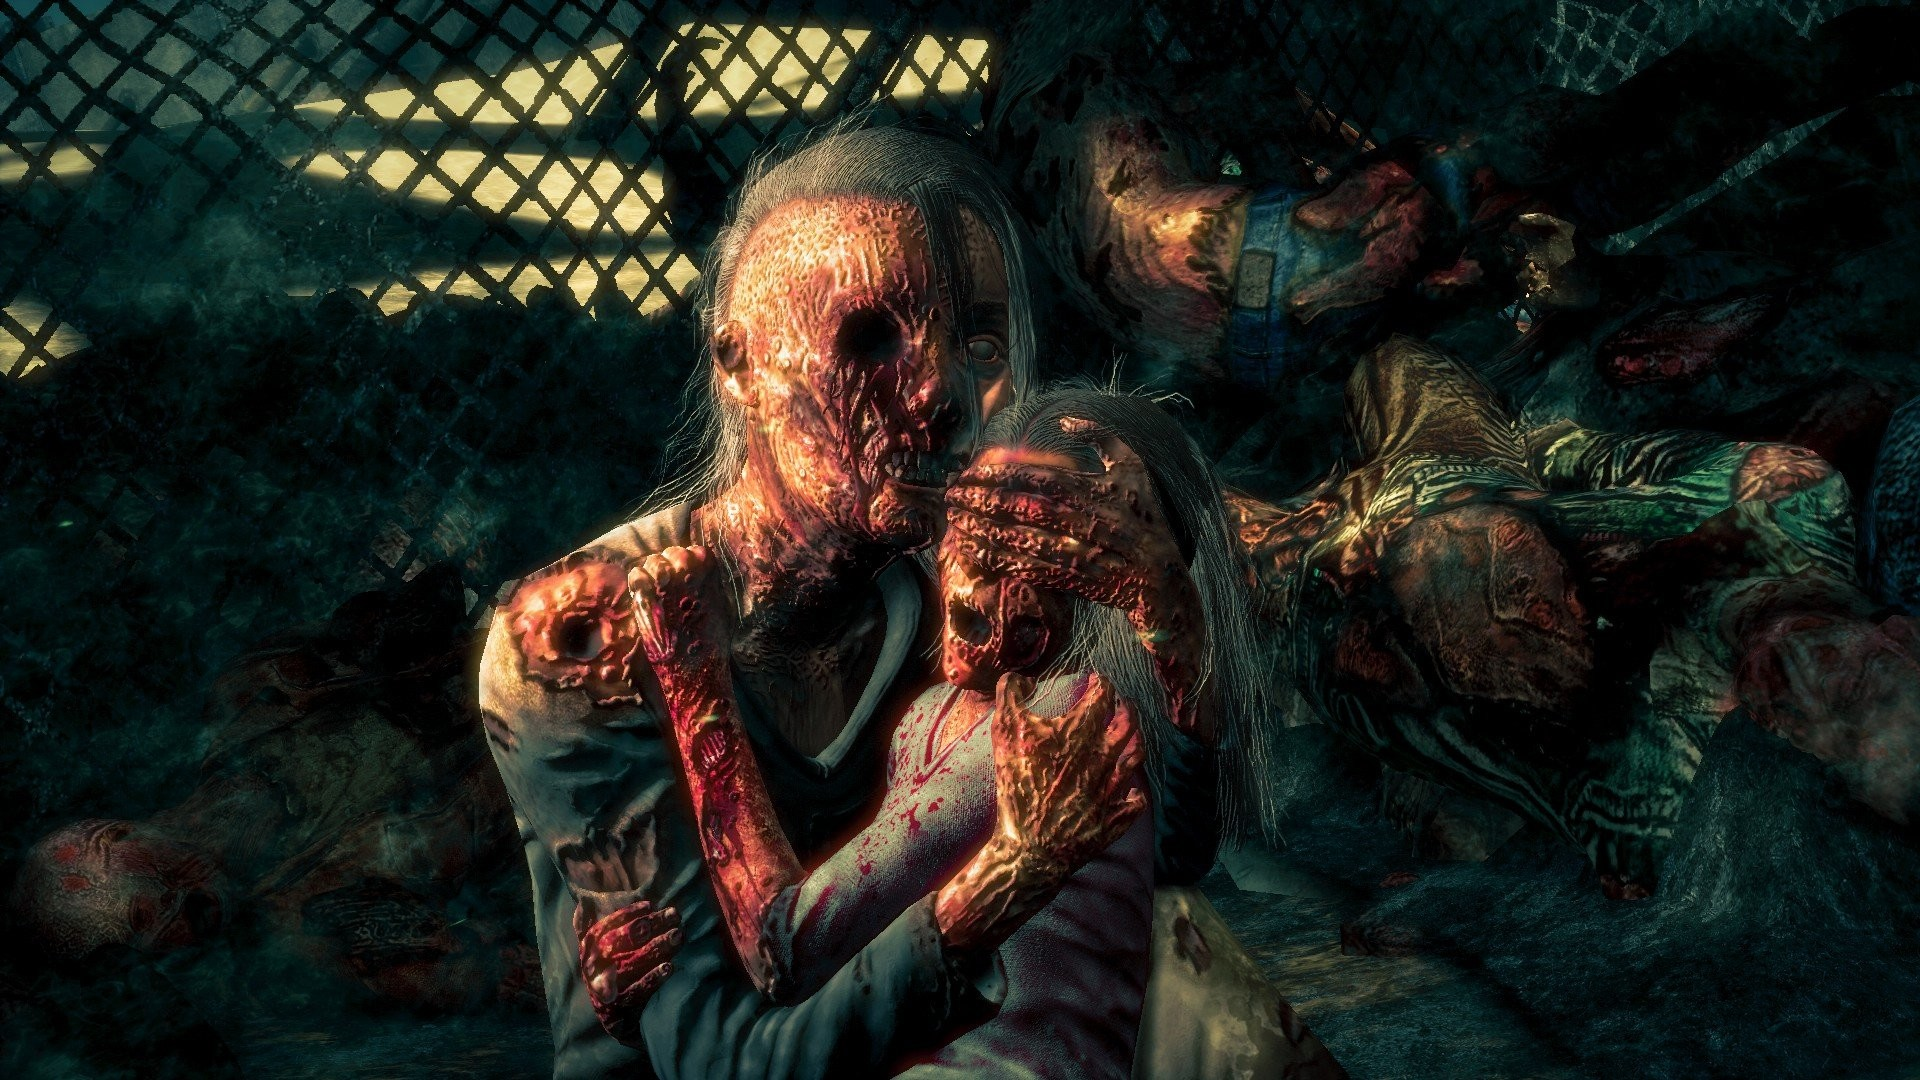 Cool zombie wallpapers 59 images 1920x1140 1920x1140 romantically apocalyptic zombie window fantasy dark mask wallpaper download voltagebd Gallery